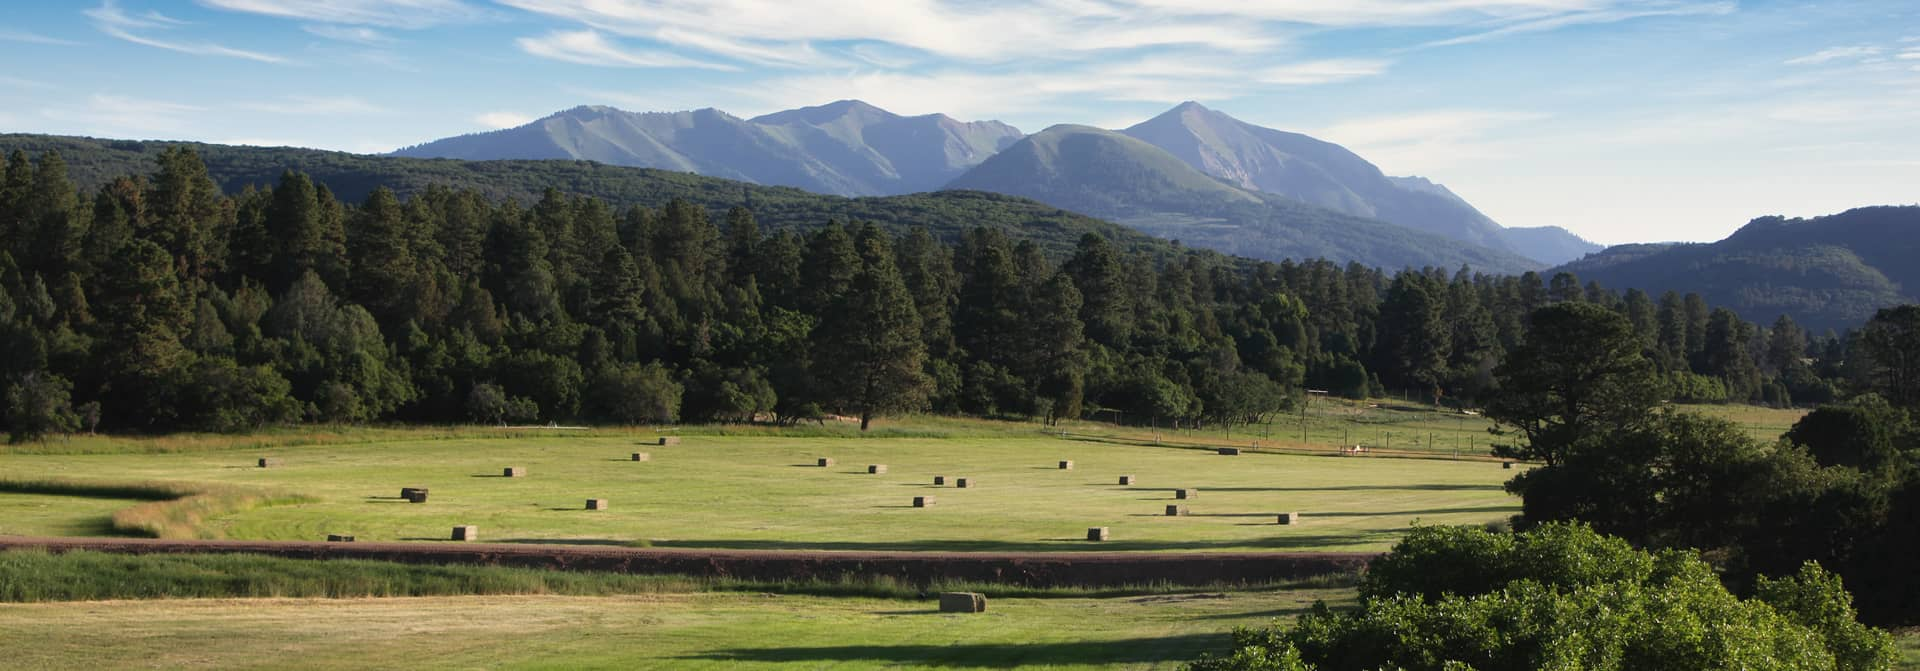 The quiet valley where we raise our Wagyu cattle.